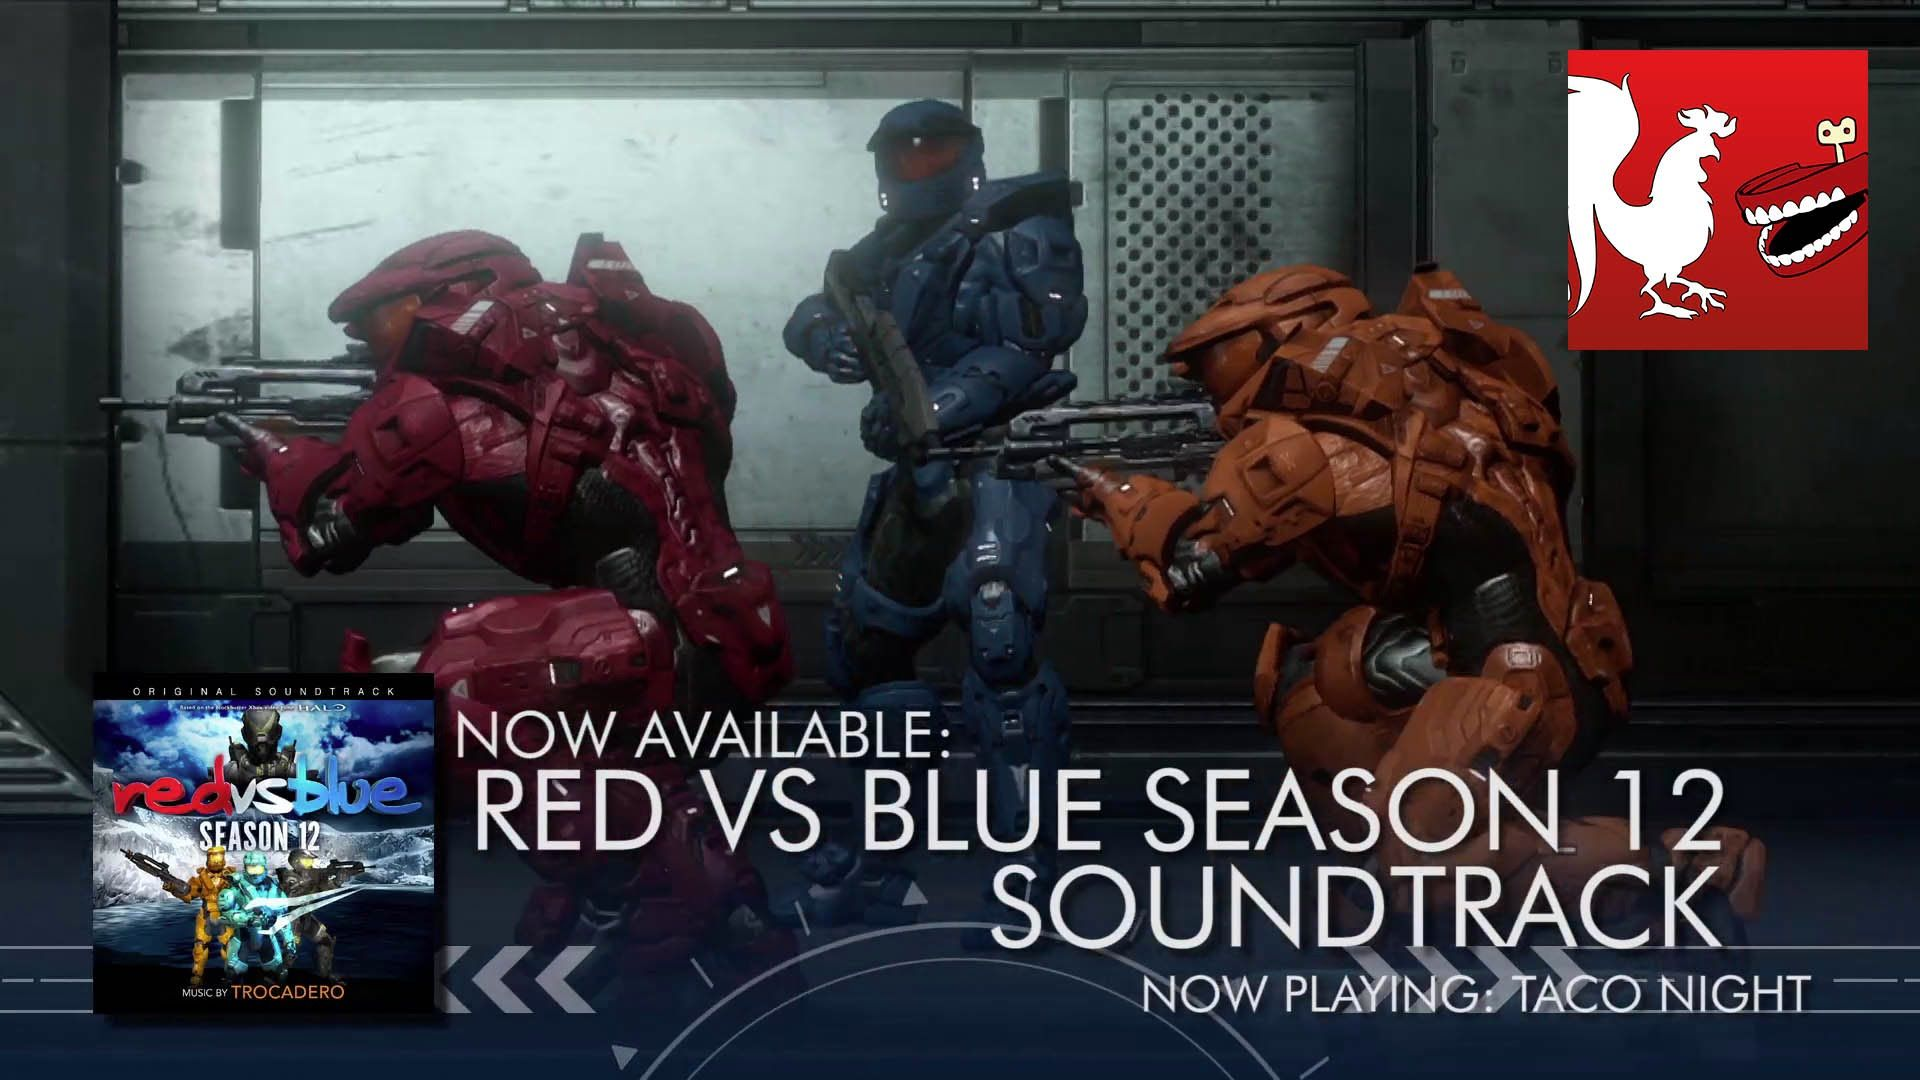 Red vs. Blue Season 12 Soundtrack Trailer